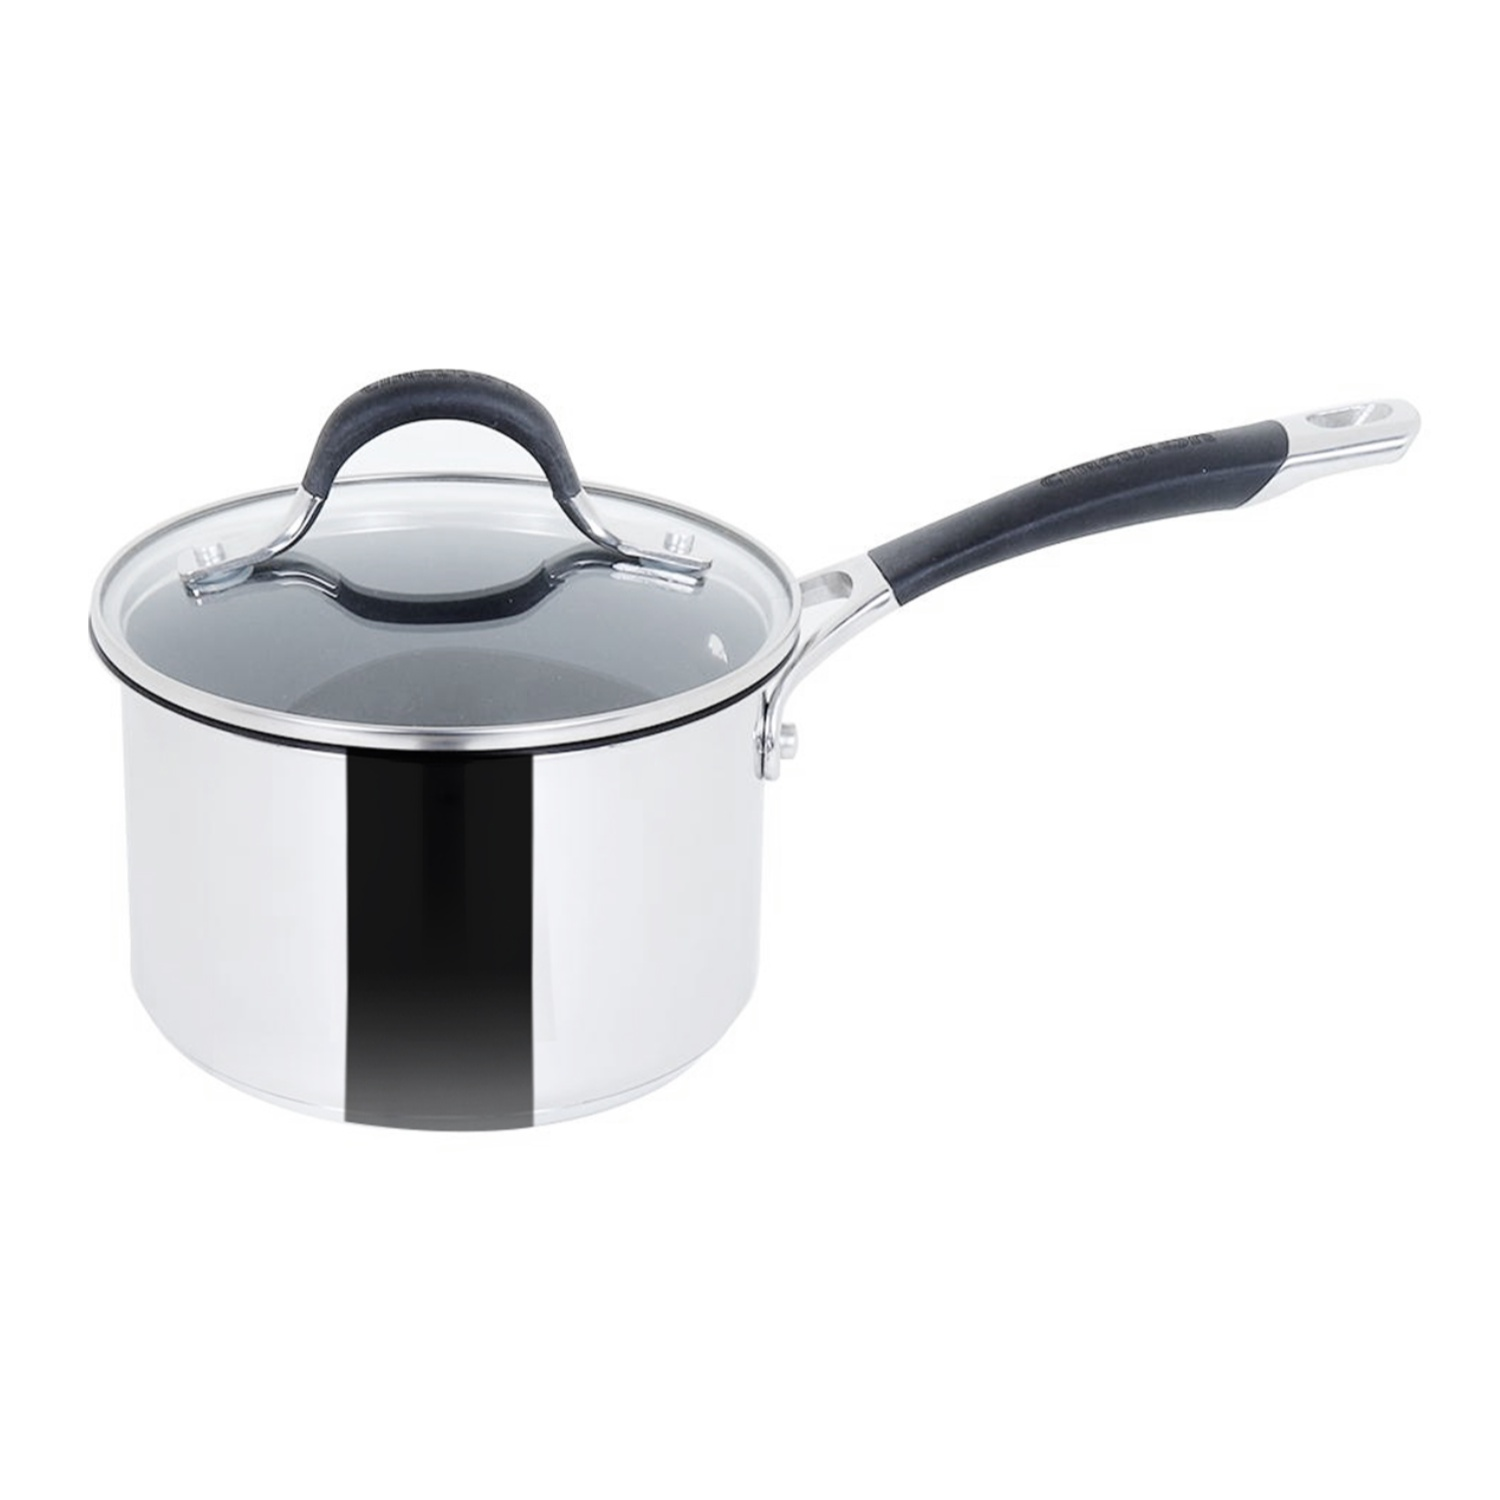 Meyer Stainless steel Sauce Pans in Stainless Steel Colour by meyer